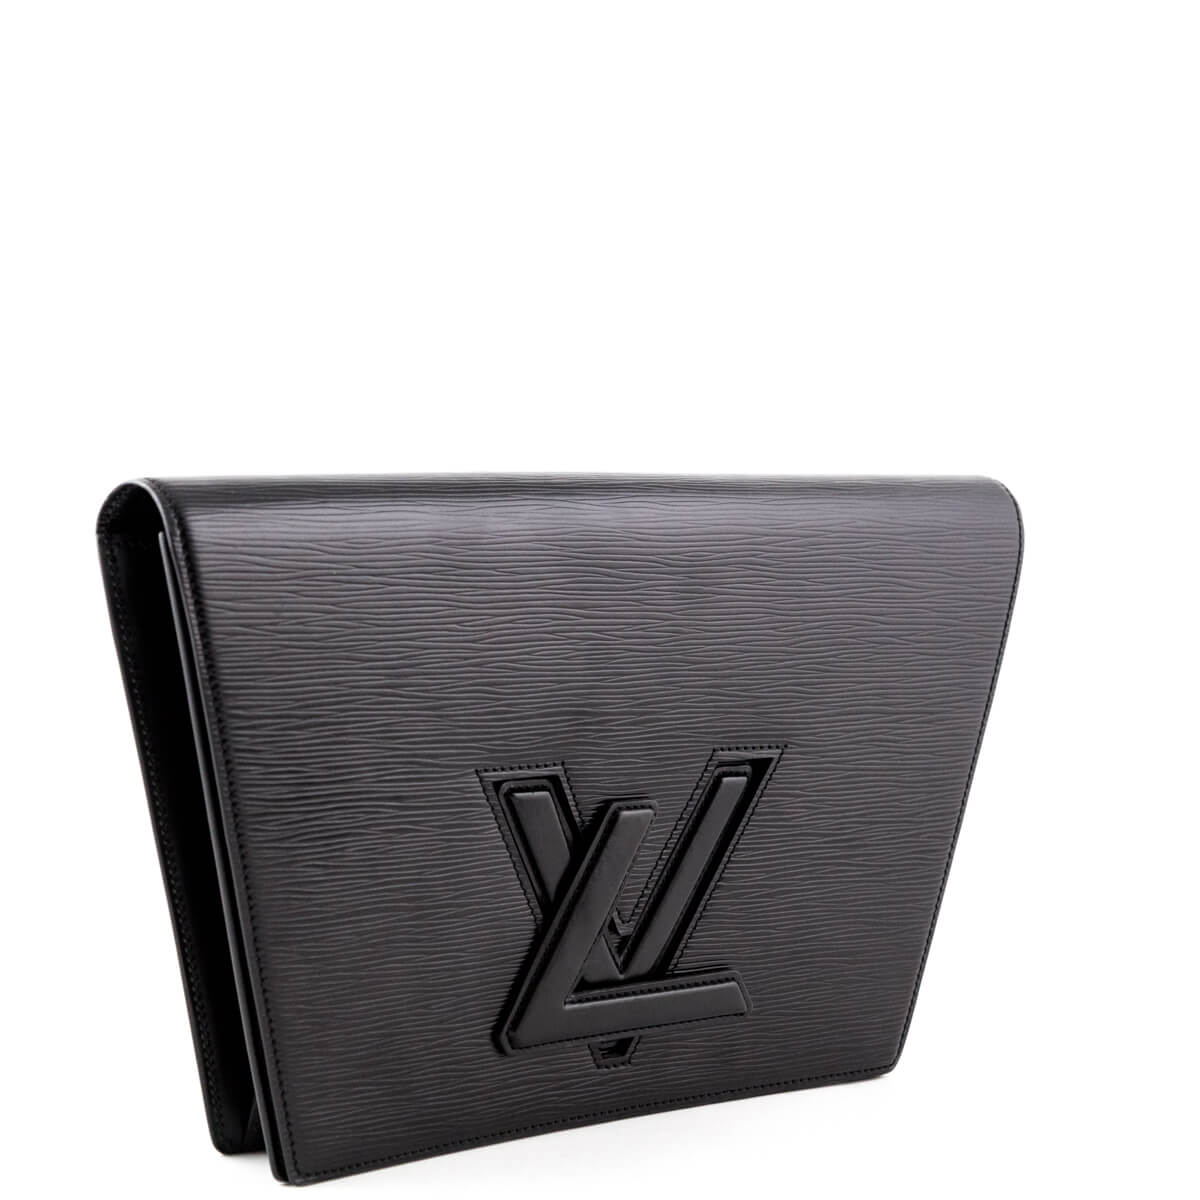 654b2bfc8fd5 ... Louis Vuitton Black Epi Large Trapeze Clutch - LOVE that BAG - Preowned  Authentic Designer Handbags ...